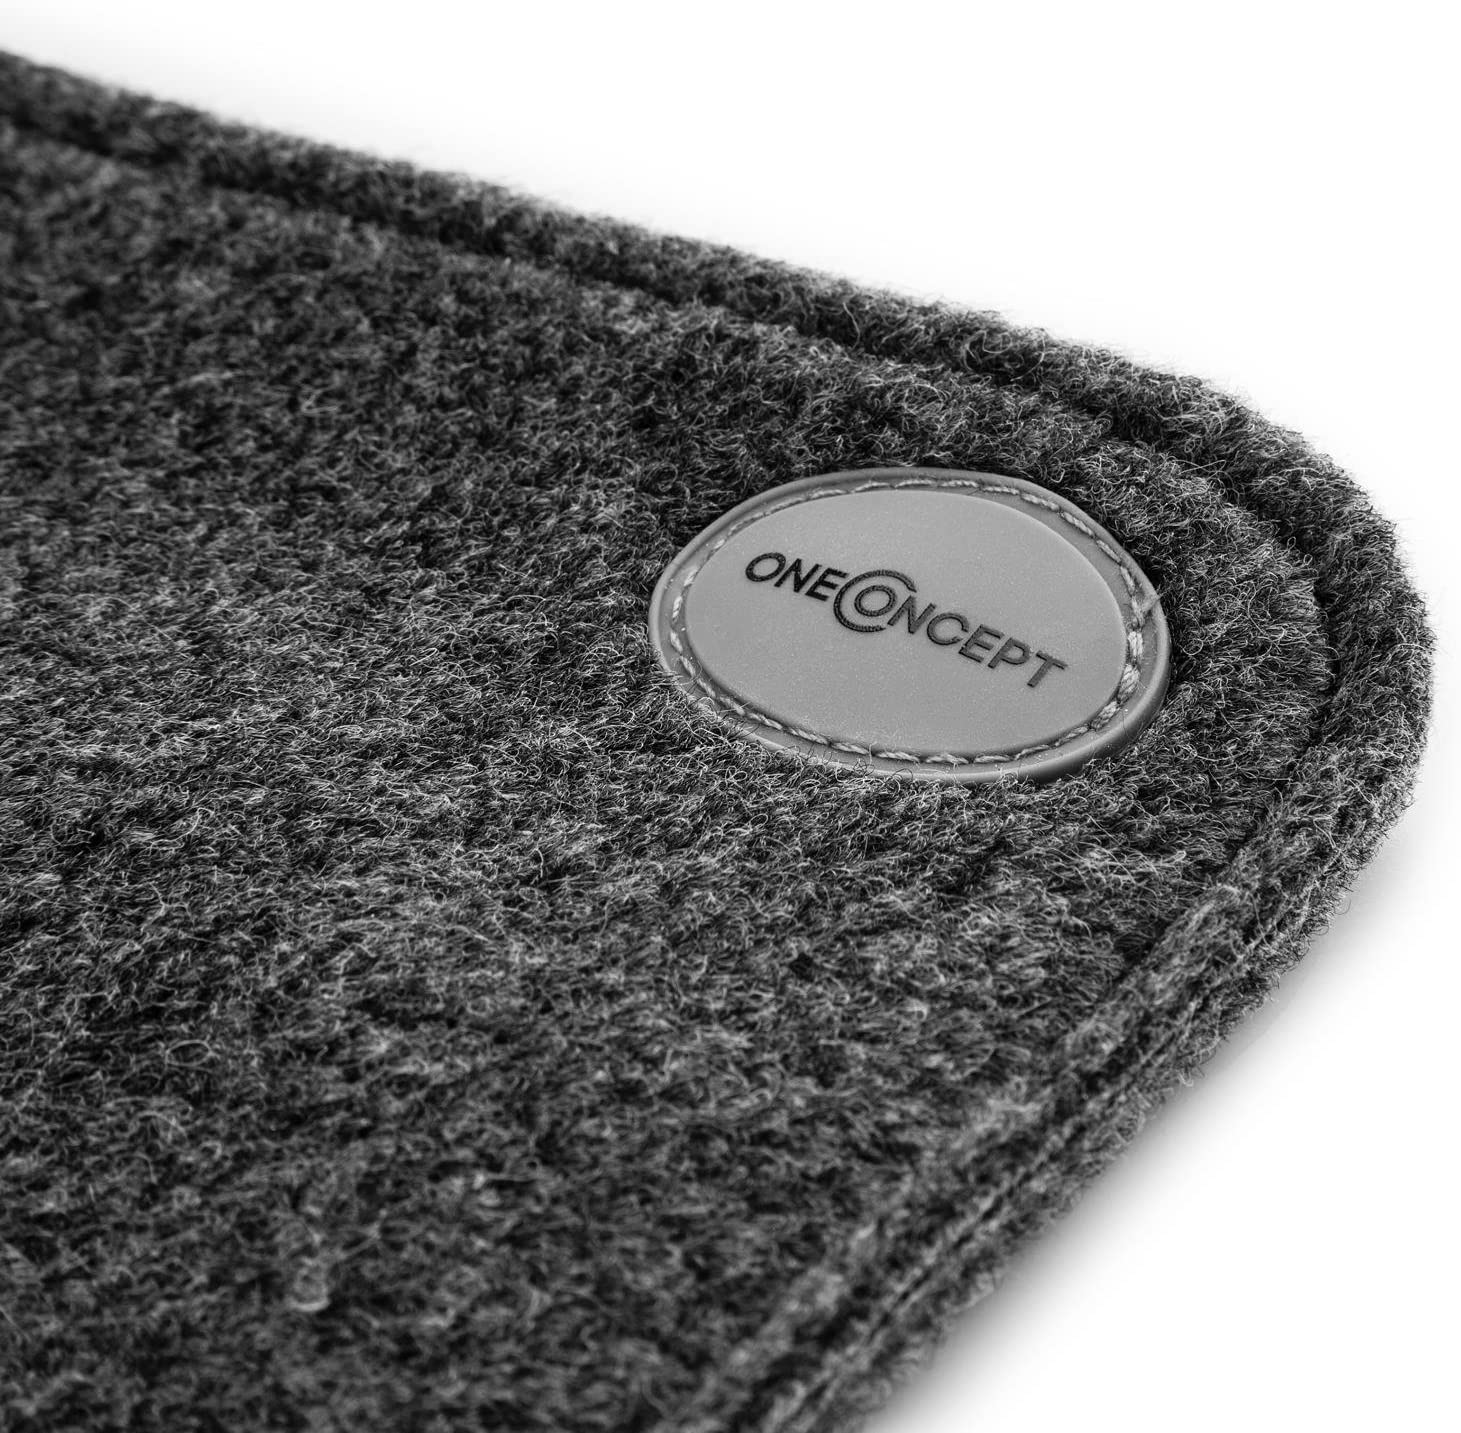 Tapis Chauffant Tapis Chauffe-Pieds Gris natte chauffante Housse Lavable 75 Watts Faible consommation /électrique Surface r/ésistante en Polyester OneConcept Magic Carpet 60 x 40 cm